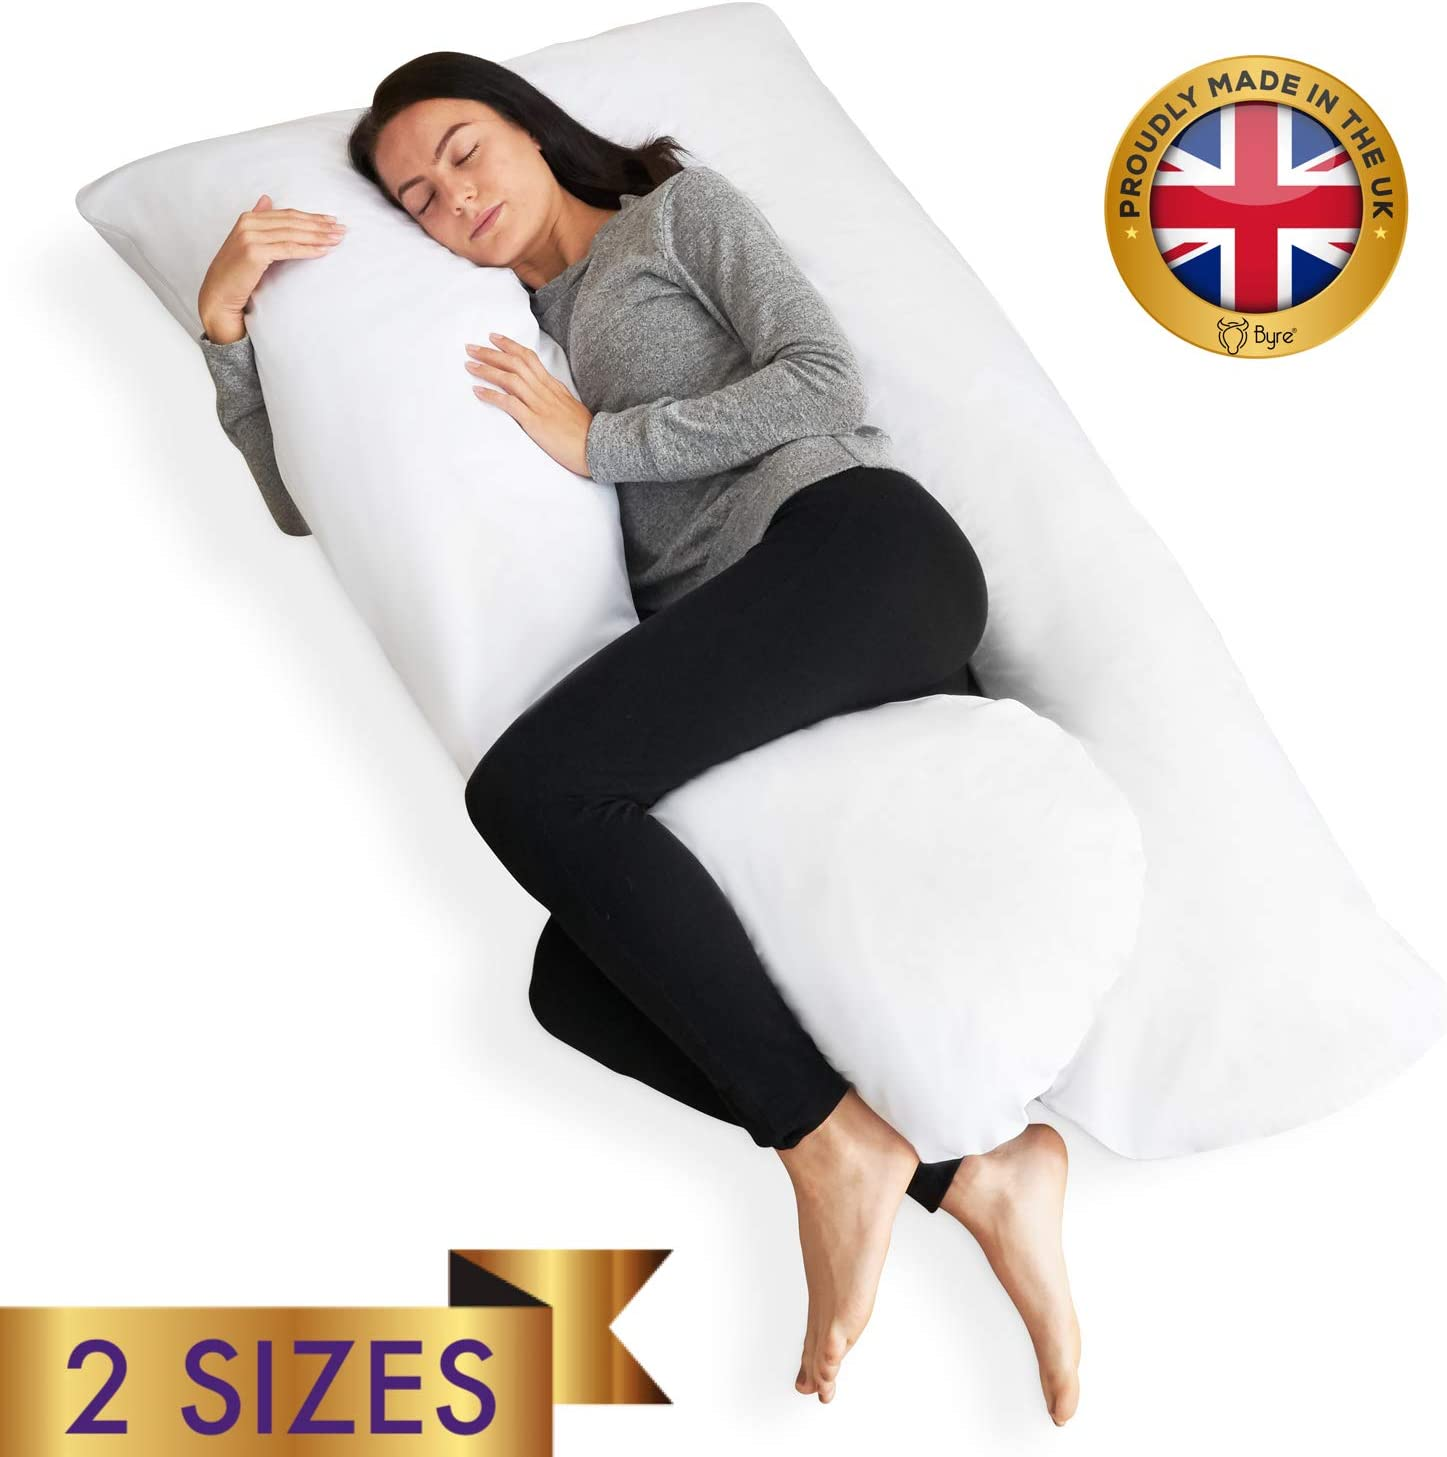 Blue Victostar Pregnancy Pillow U Shaped Full Body Maternity Pillow for Pregnant Women with Washable Premium Cover Size 57